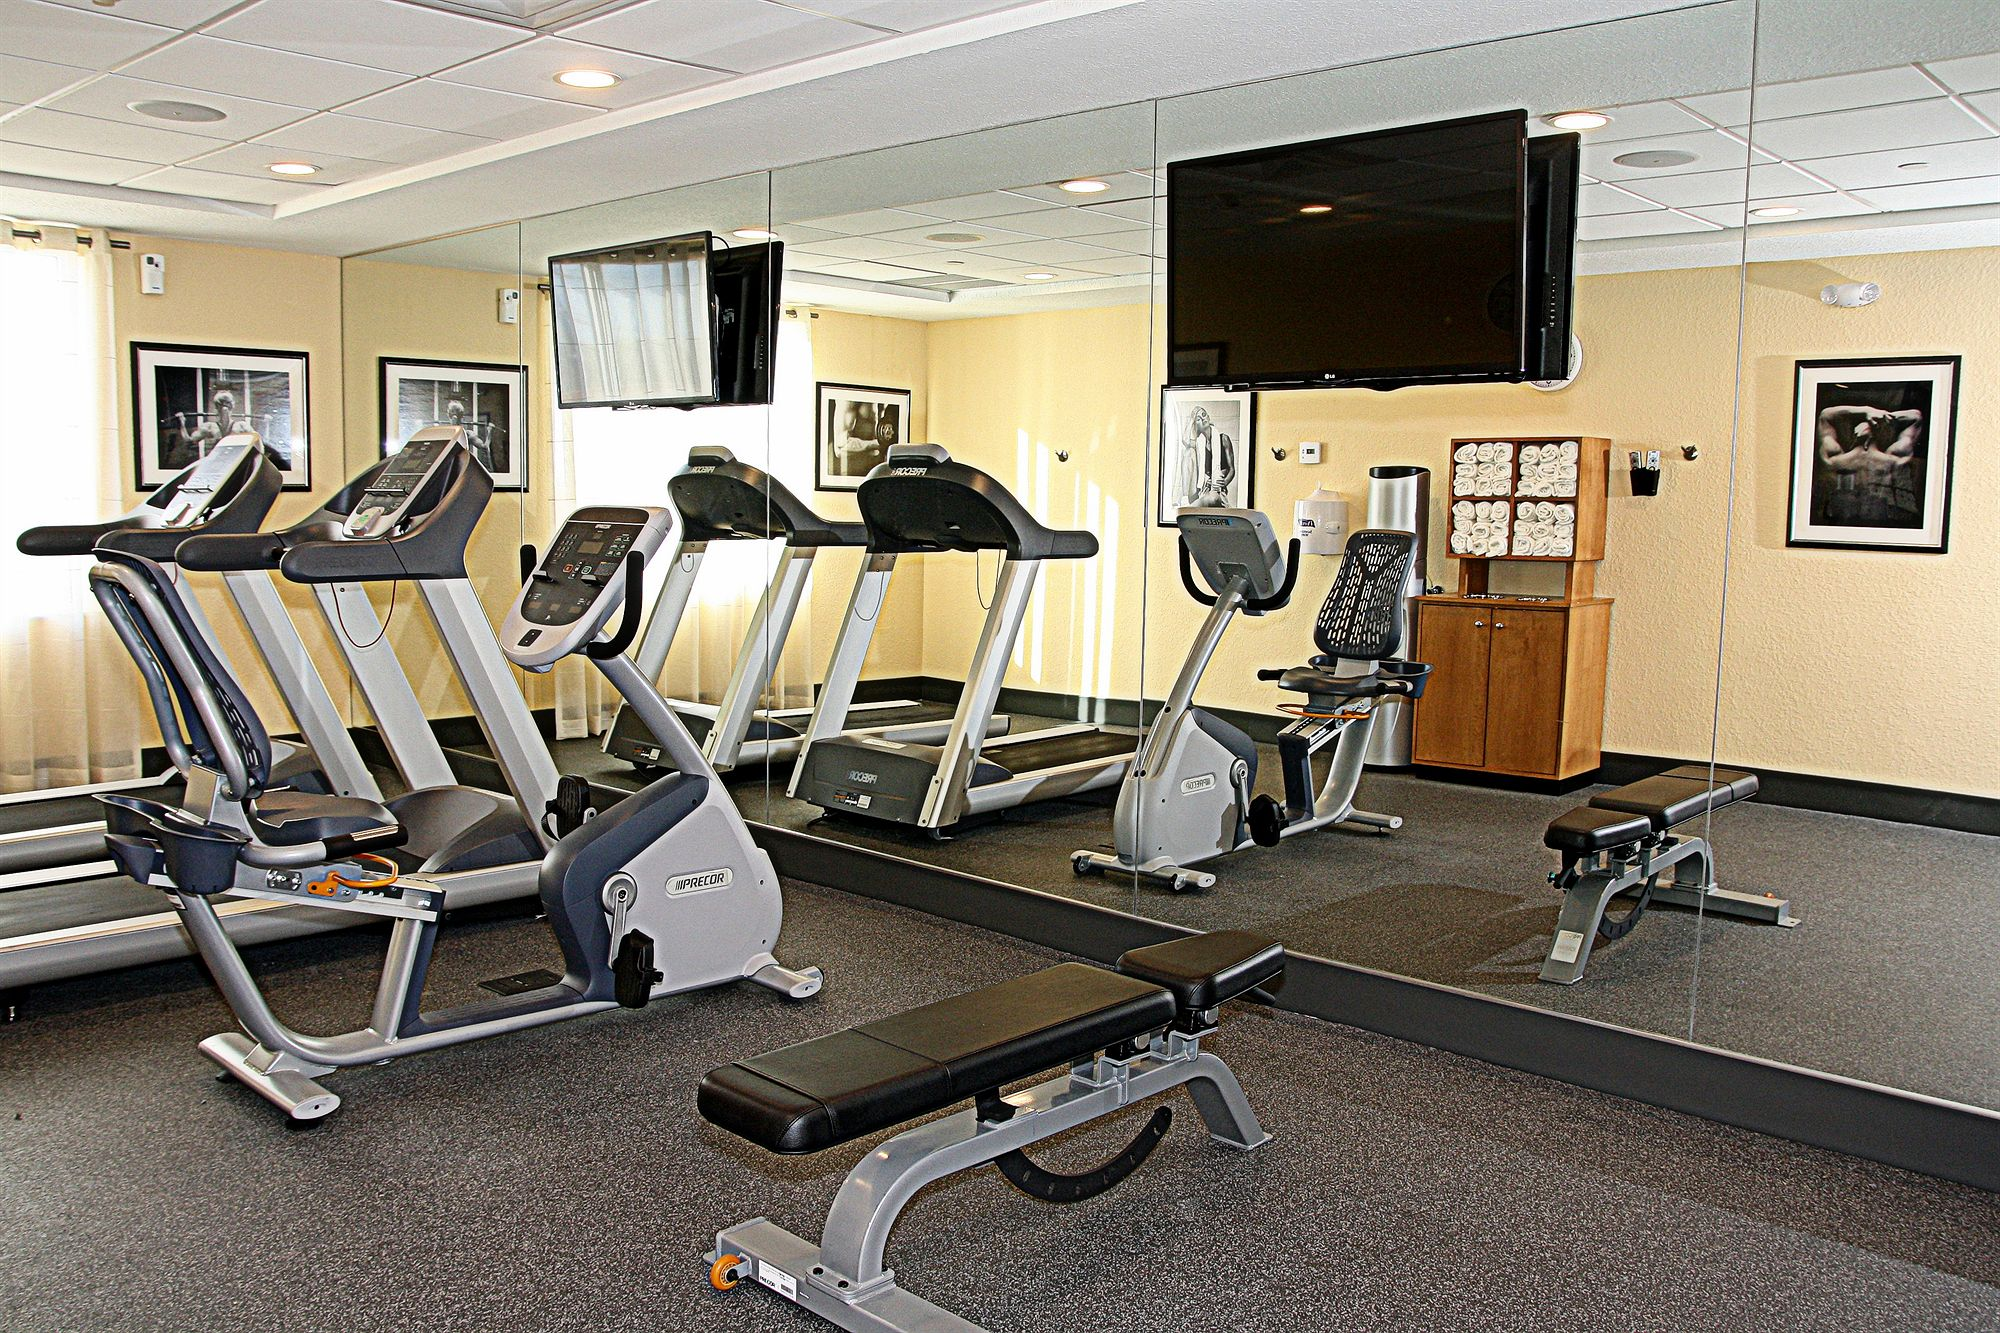 Holiday Inn Express & Suites Fort Lauderdale Airport South in Dania Beach, FL